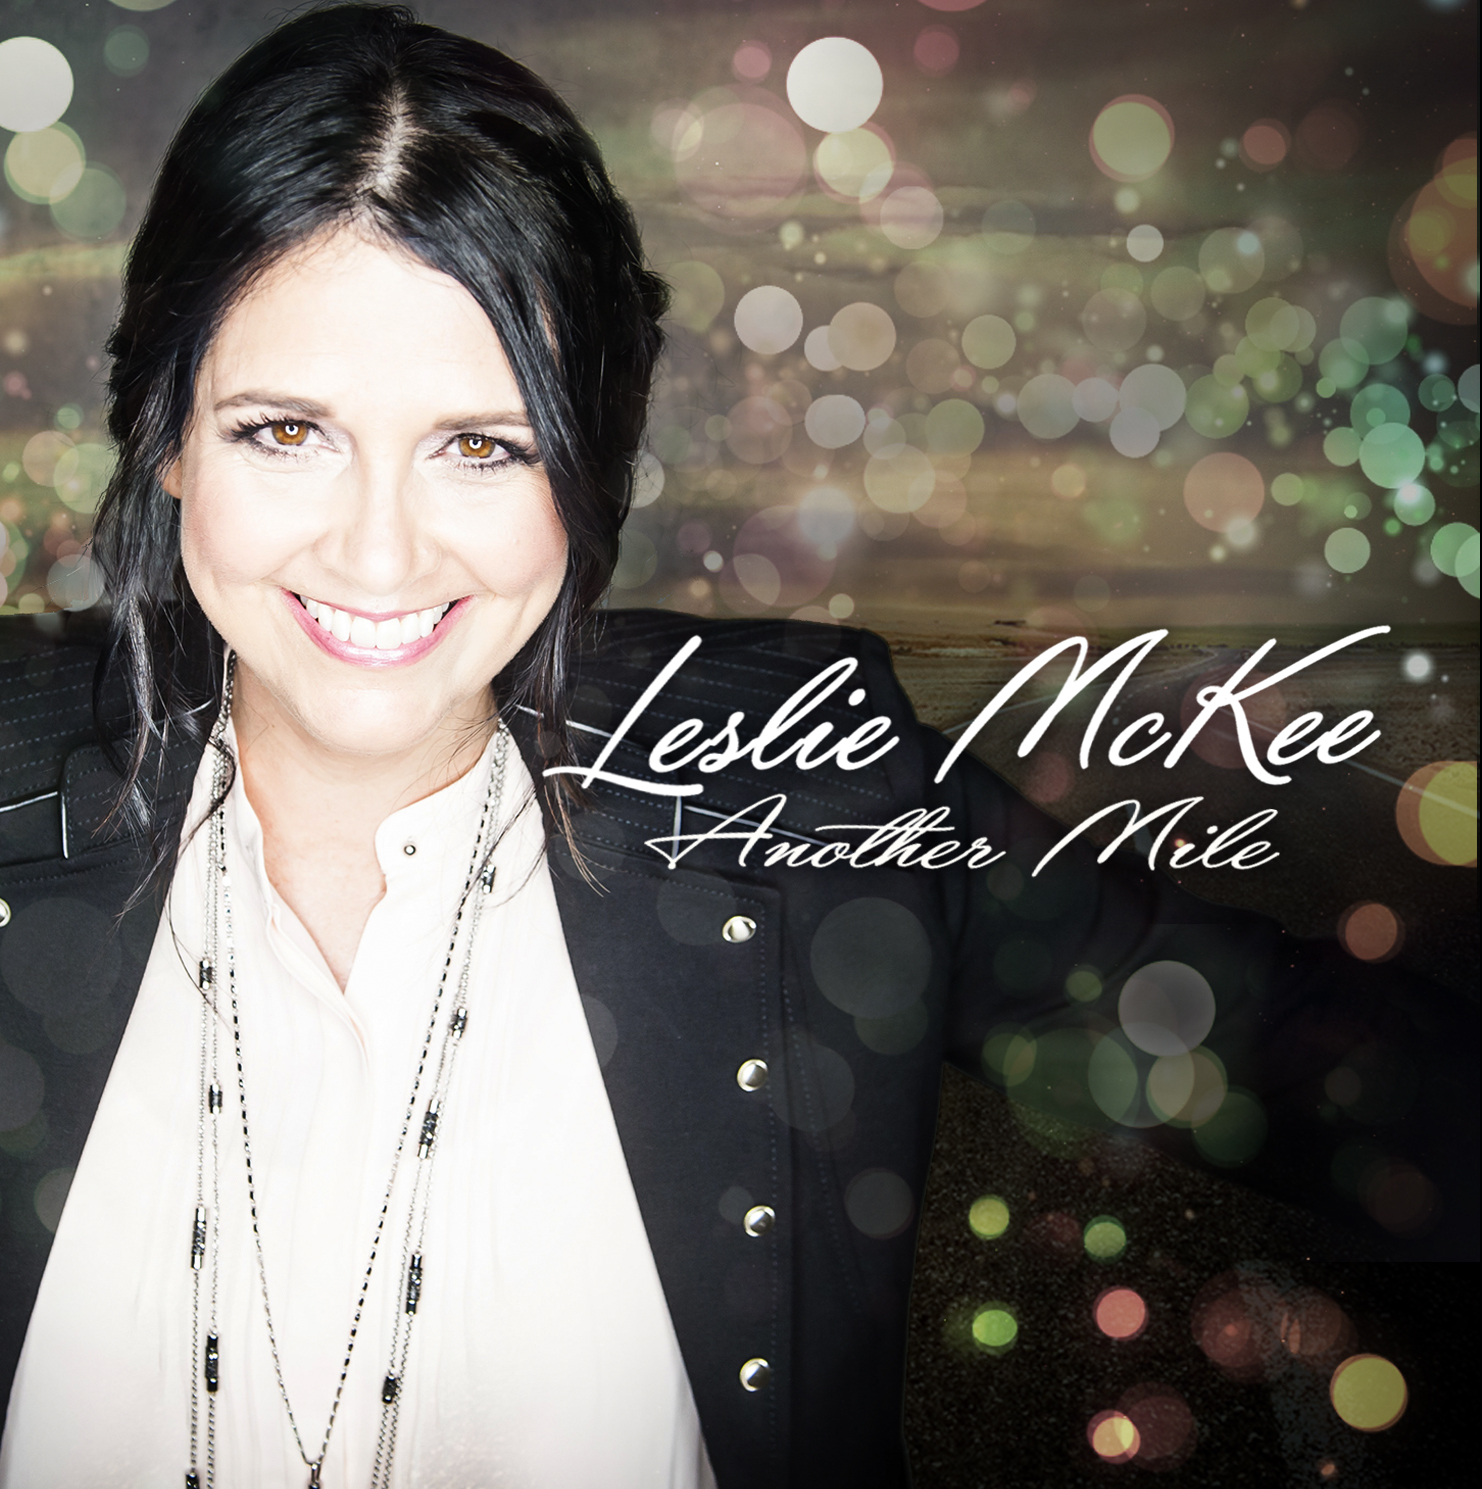 CREATIVE SOUL RECORDS ARTIST LESLIE MCKEE RELEASES NEW SINGLE